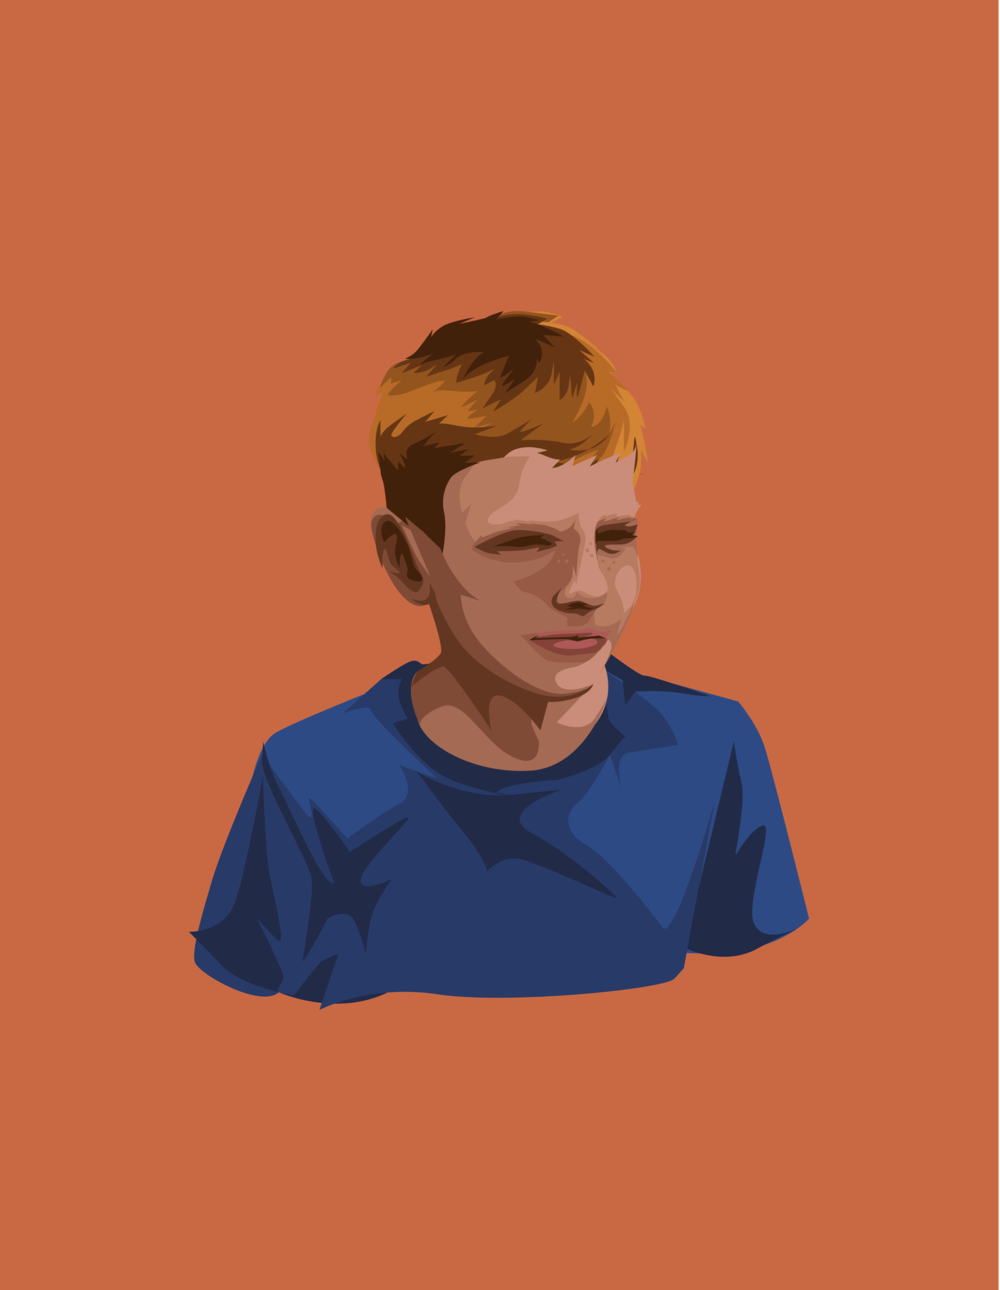 portrait-tomothy-budic04.png